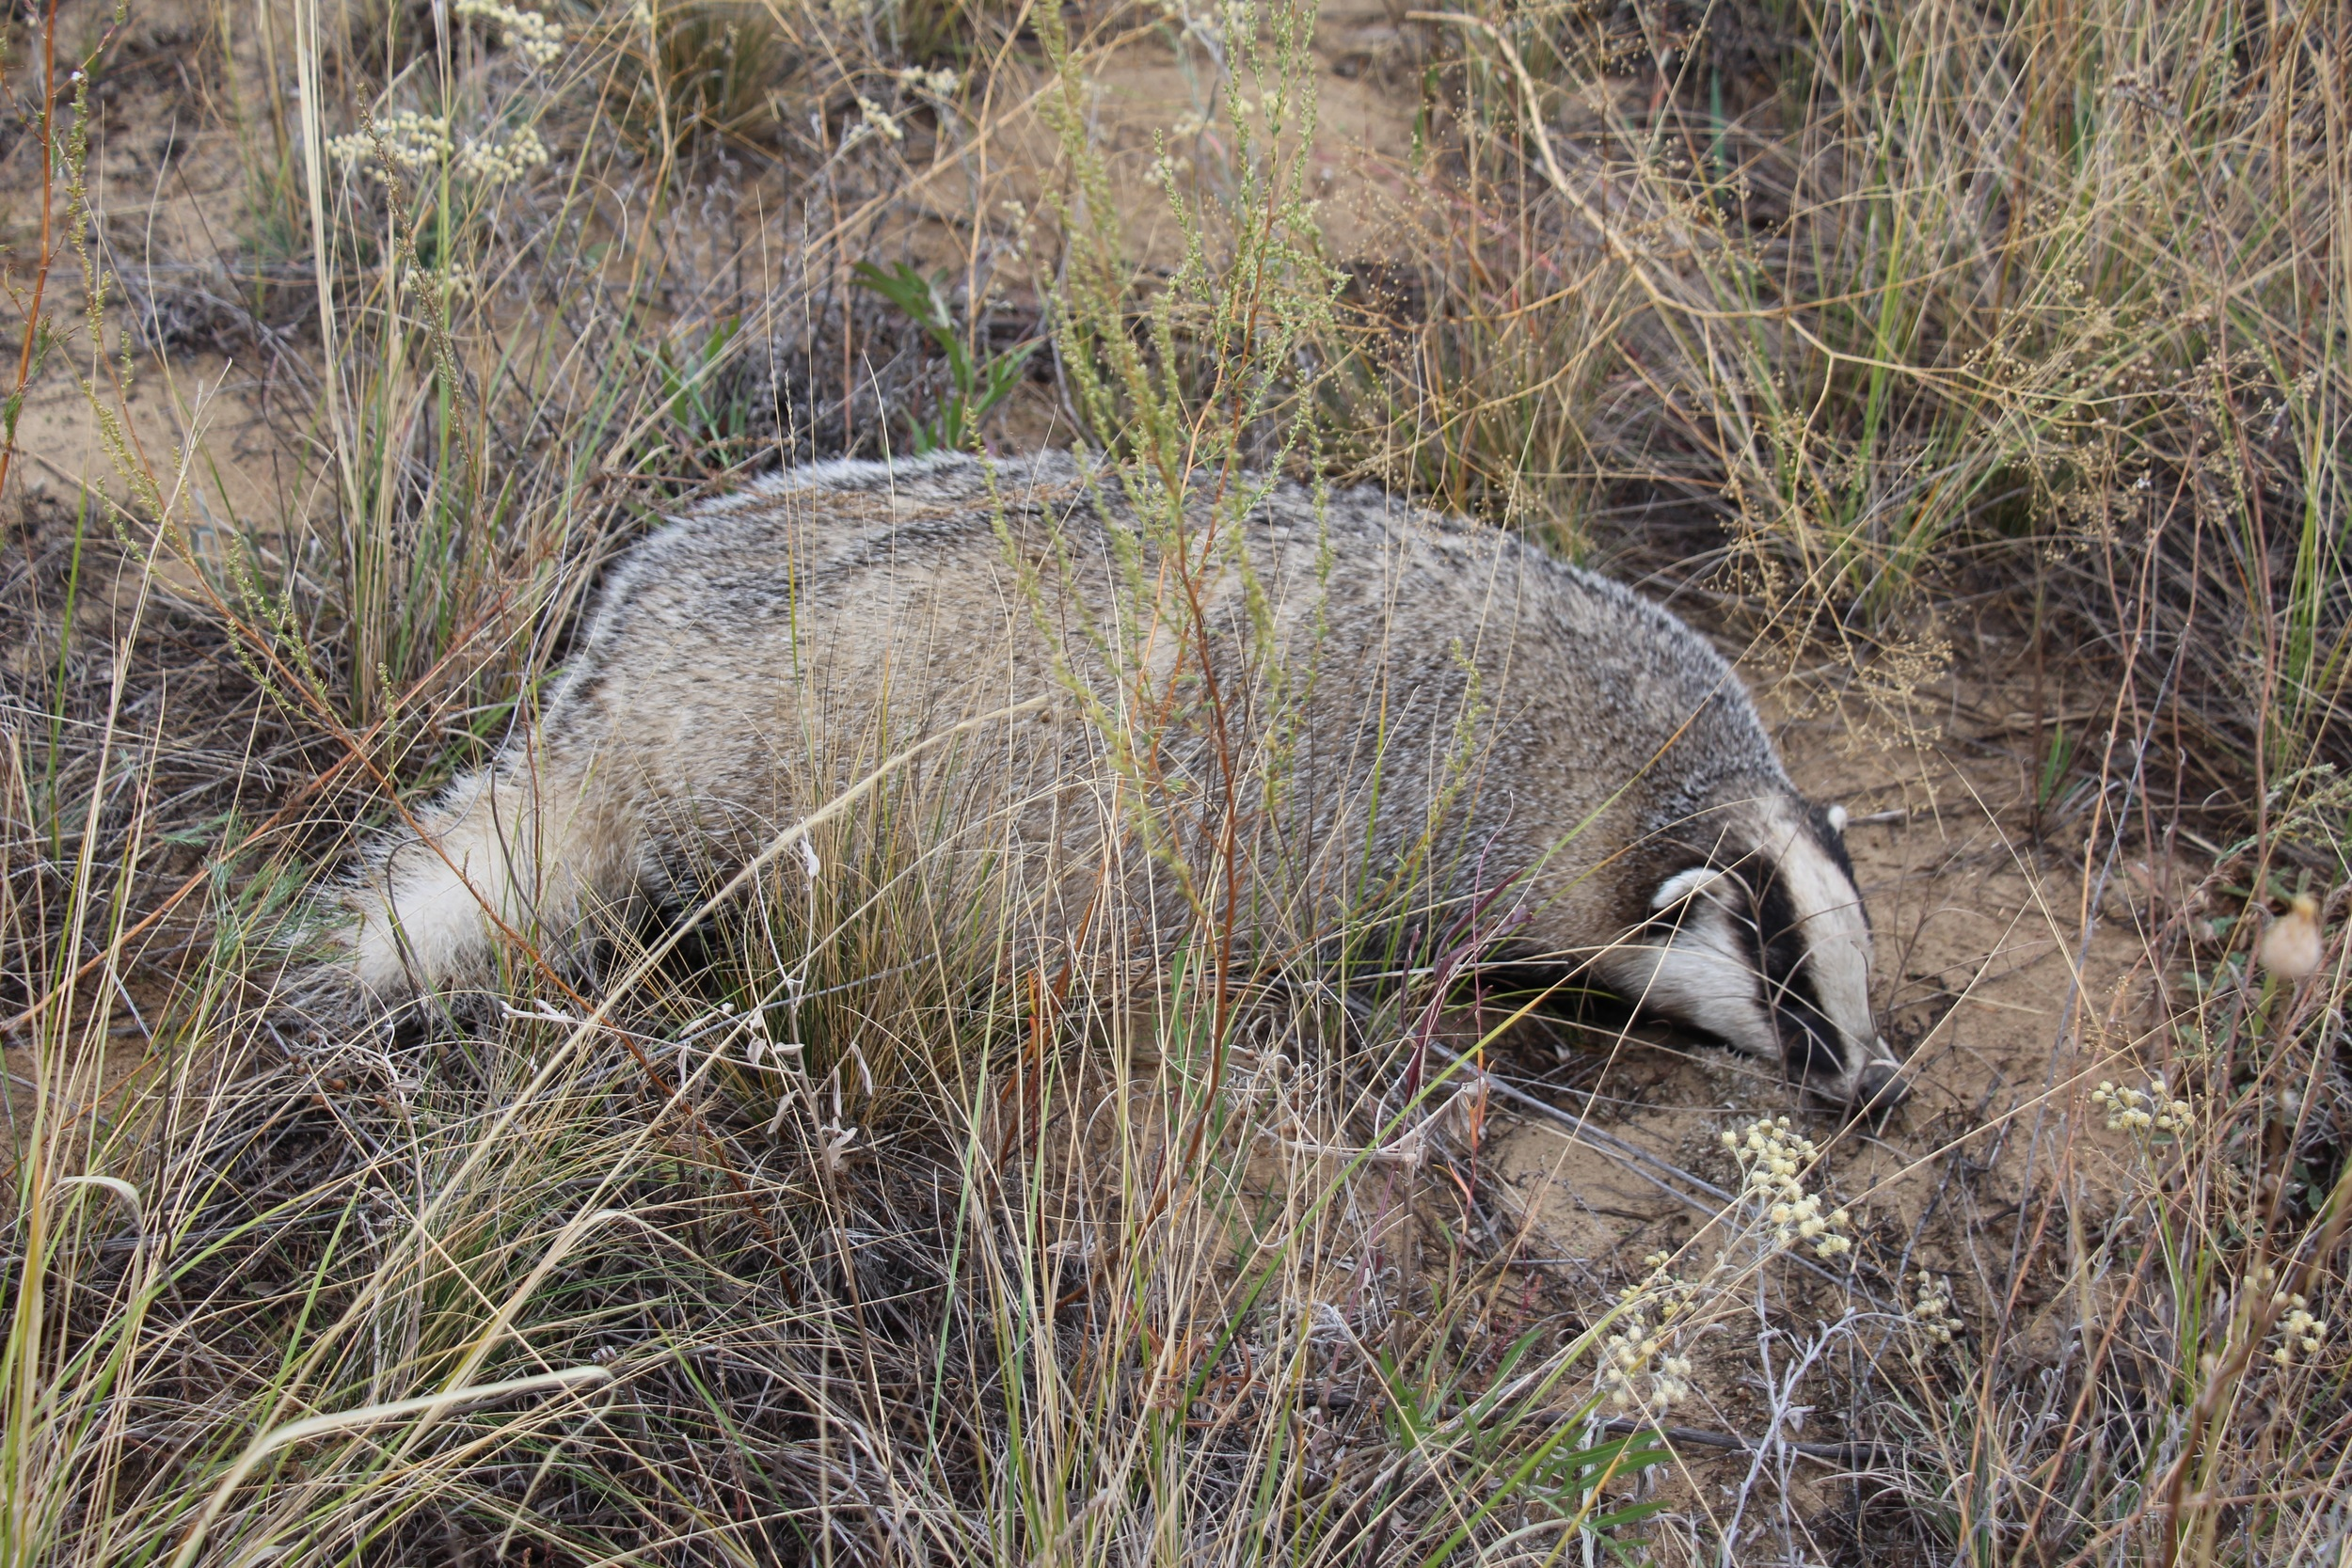 European Badger in Narzum